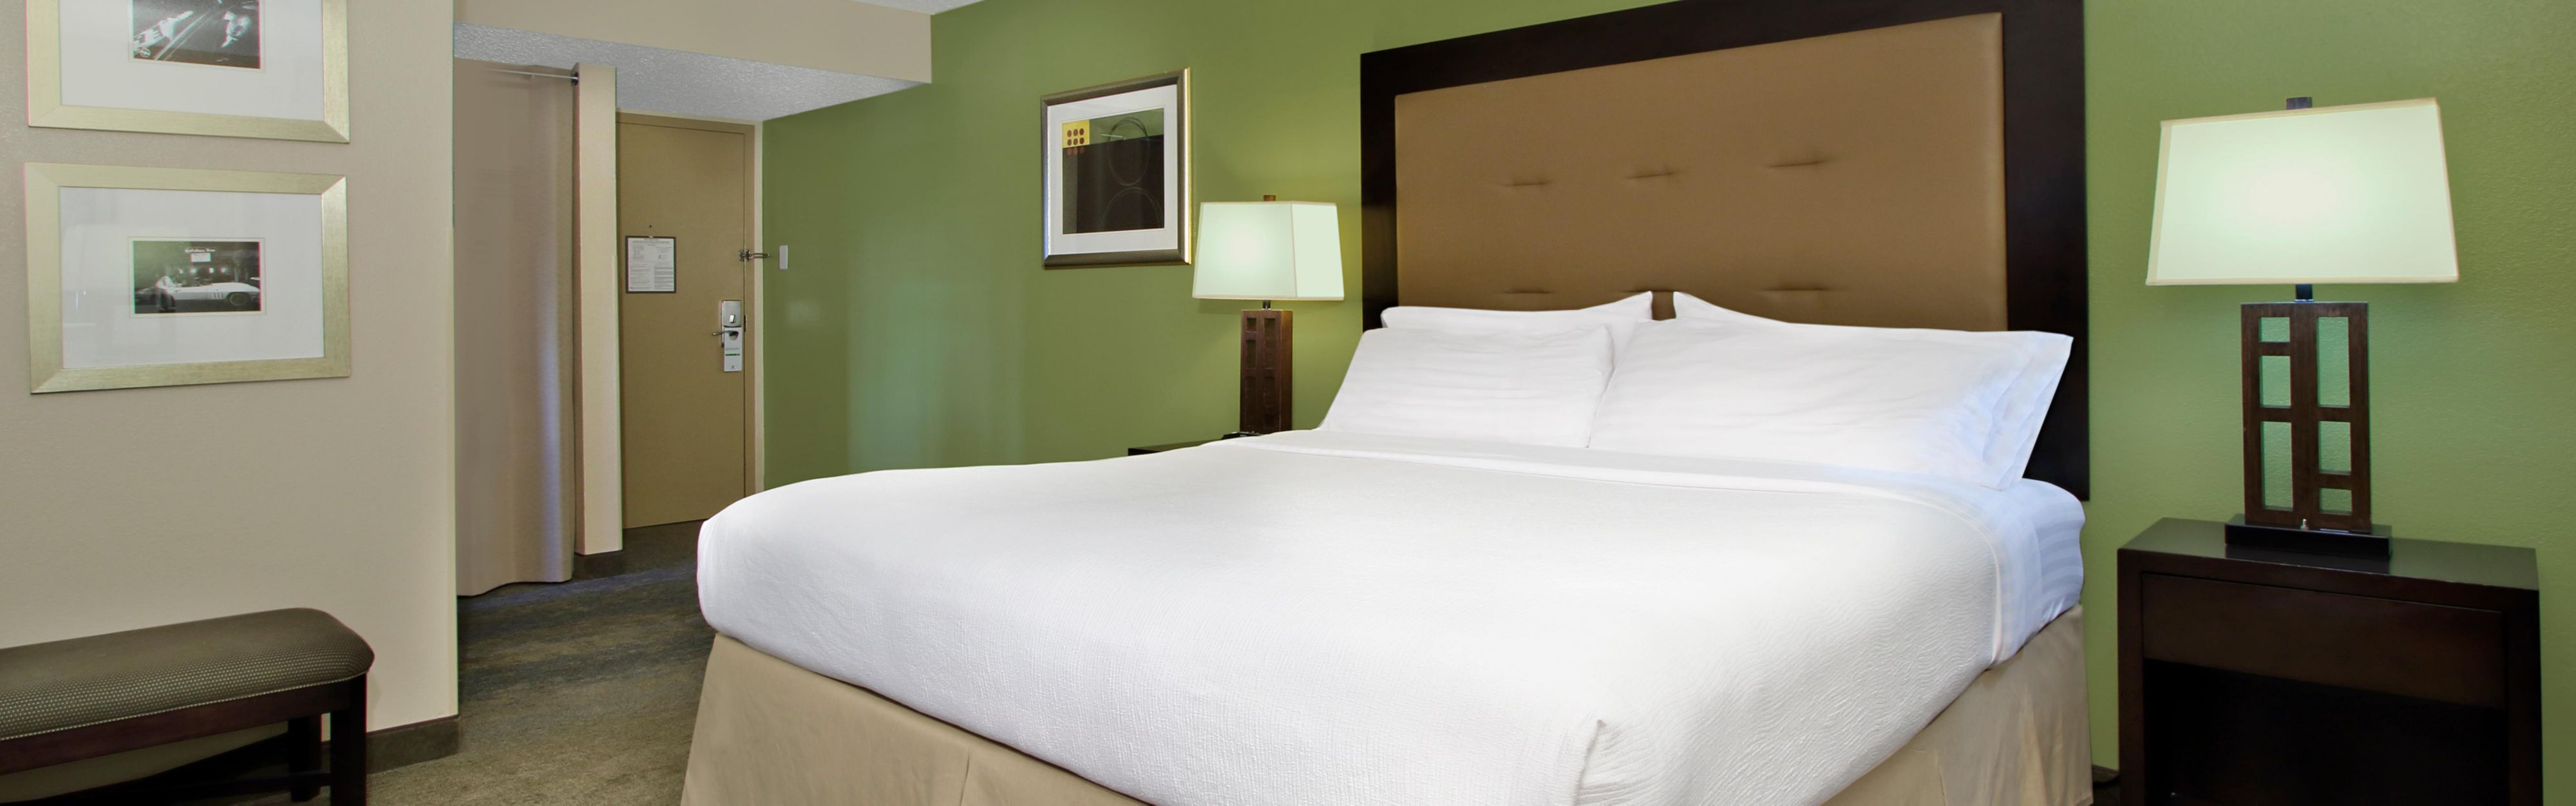 Holiday Inn Metairie New Orleans Airport Hotel